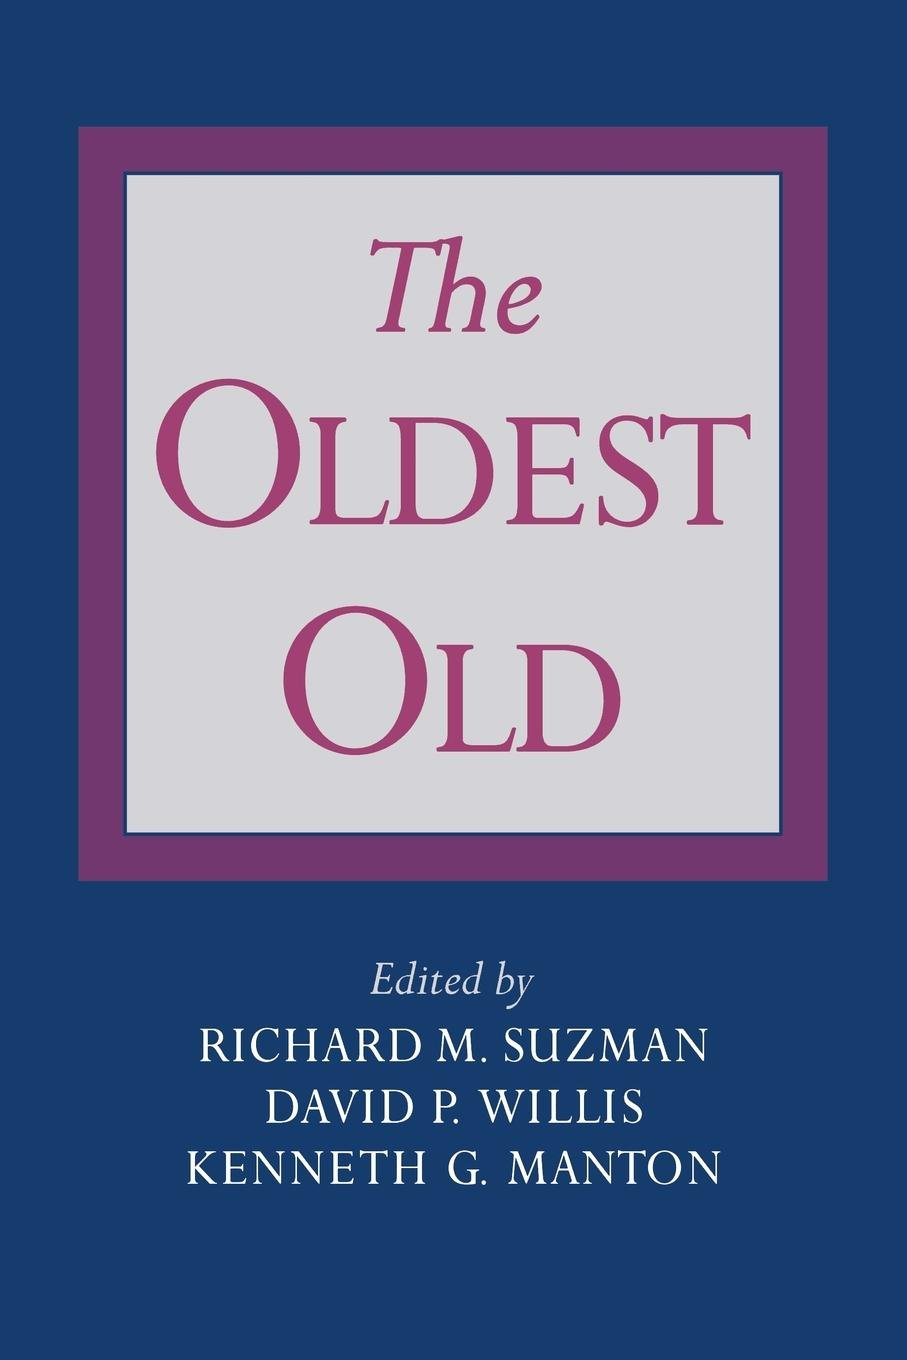 The Oldest Old by Oxford University Press